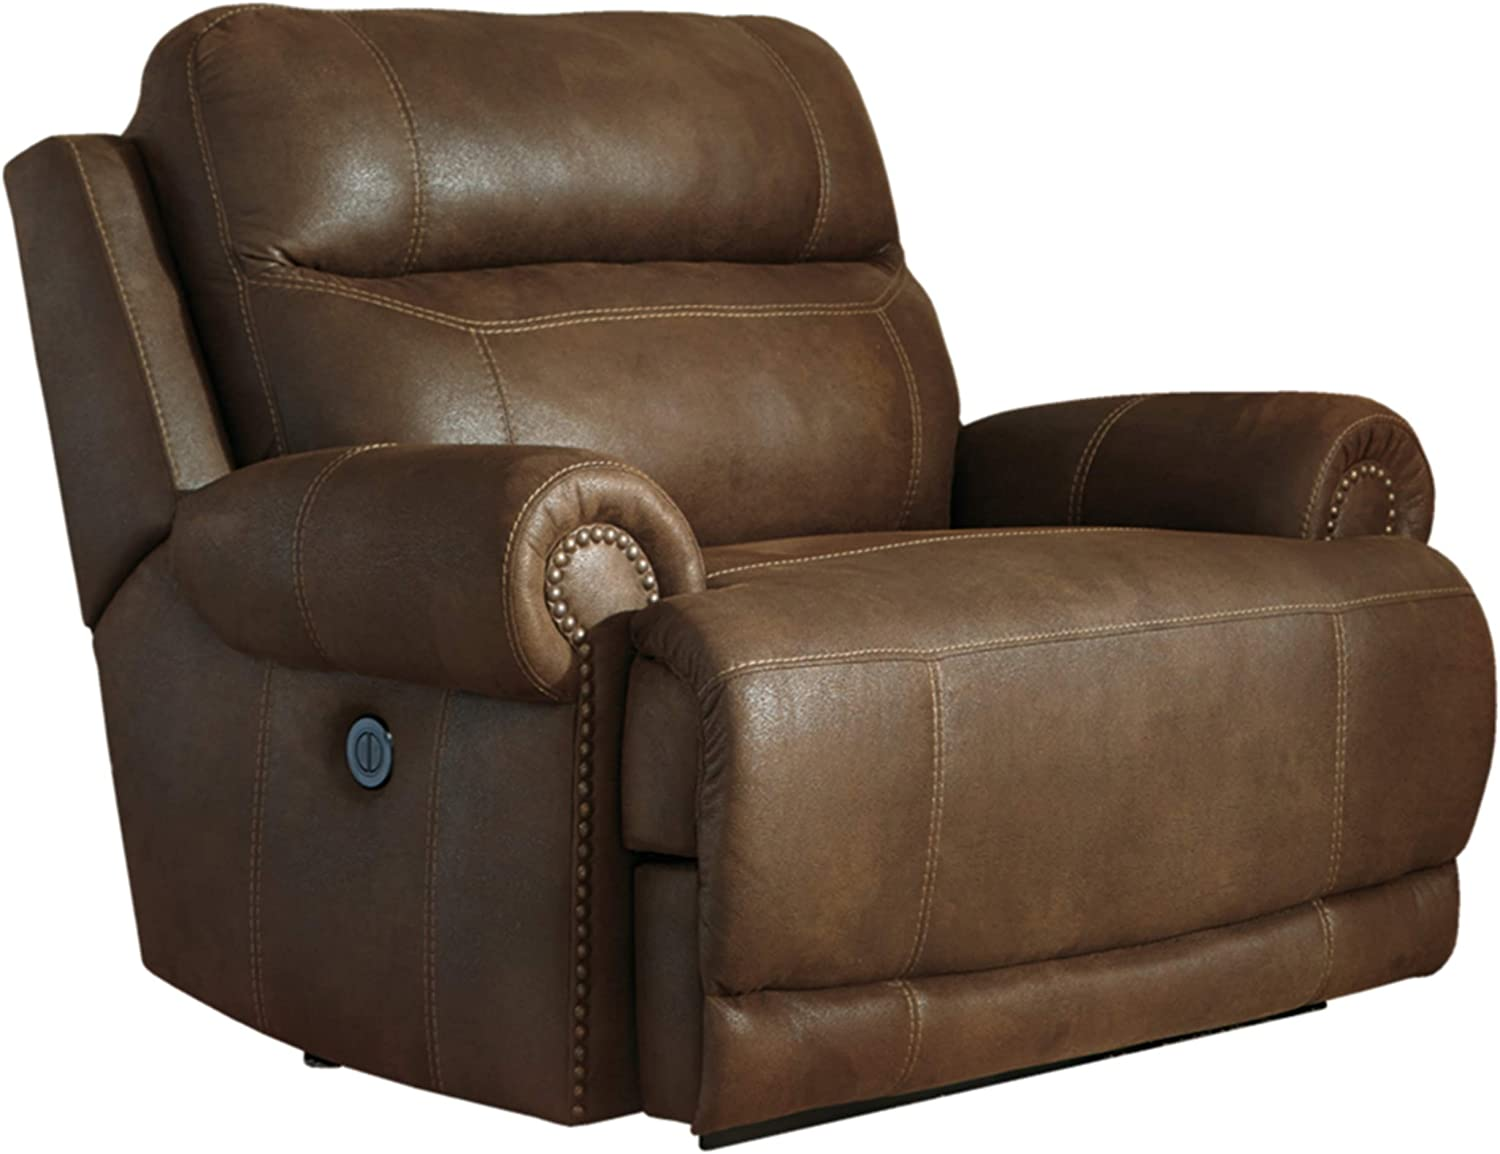 Signature Design by Ashley - Austere Contemporary Faux Leather Oversized Zero Wall Power Recliner, Brown